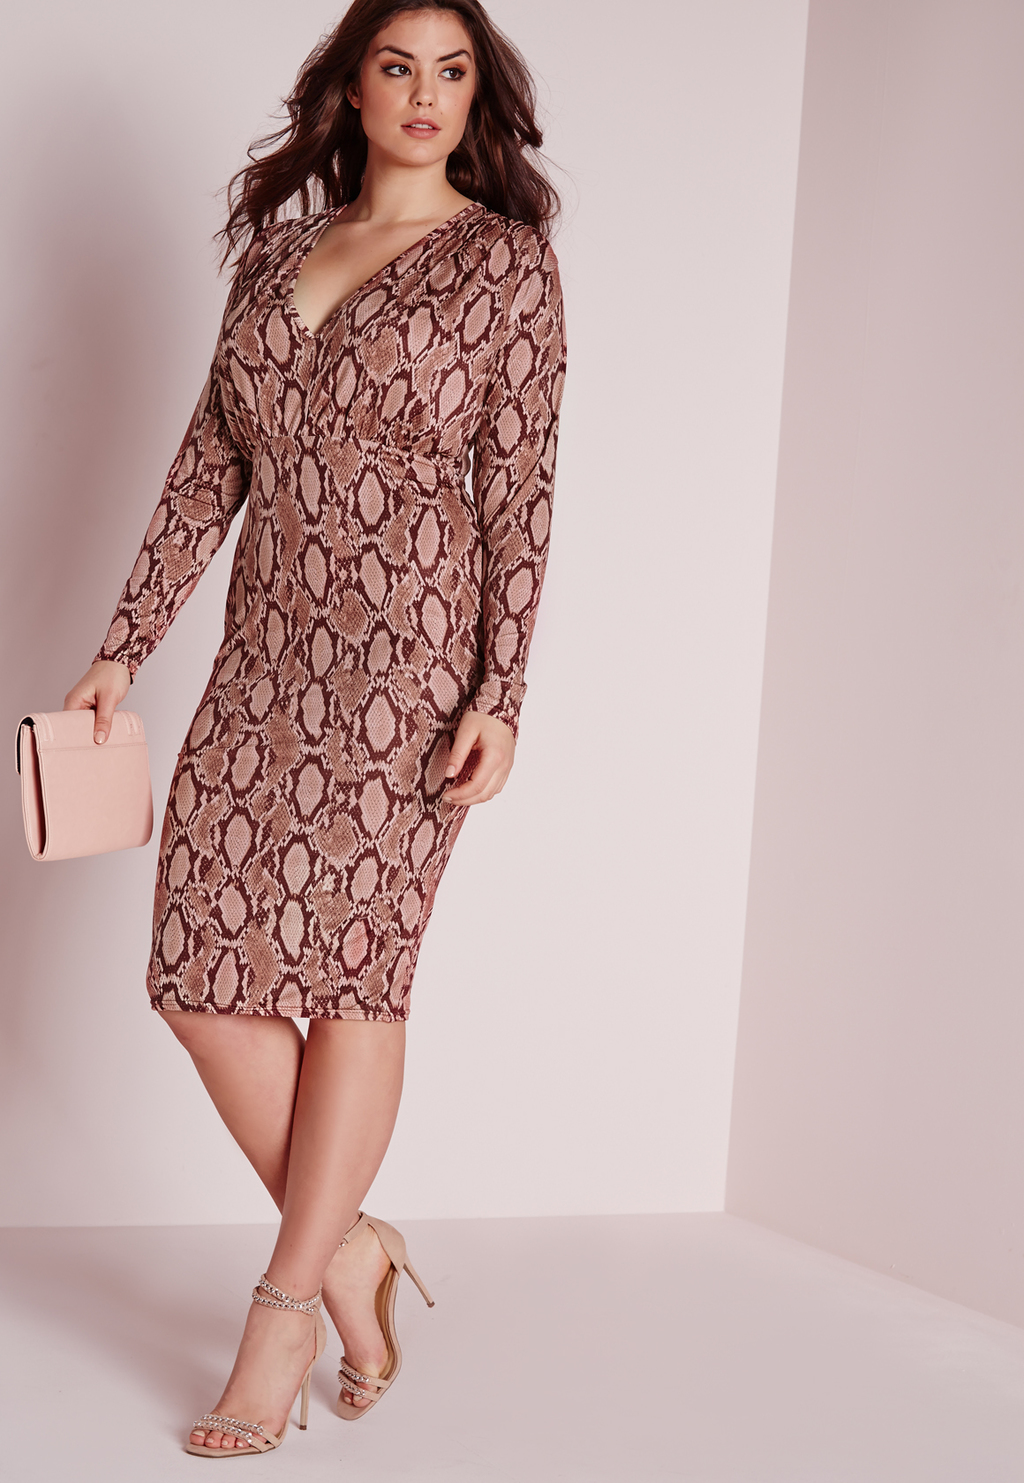 Plus Size Snake Print Plunge Dress Pink, Pink - style: faux wrap/wrap; length: below the knee; neckline: low v-neck; predominant colour: pink; secondary colour: nude; fit: body skimming; fibres: polyester/polyamide - 100%; occasions: occasion; sleeve length: long sleeve; sleeve style: standard; pattern type: fabric; pattern size: standard; pattern: animal print; texture group: jersey - stretchy/drapey; multicoloured: multicoloured; season: s/s 2016; wardrobe: event